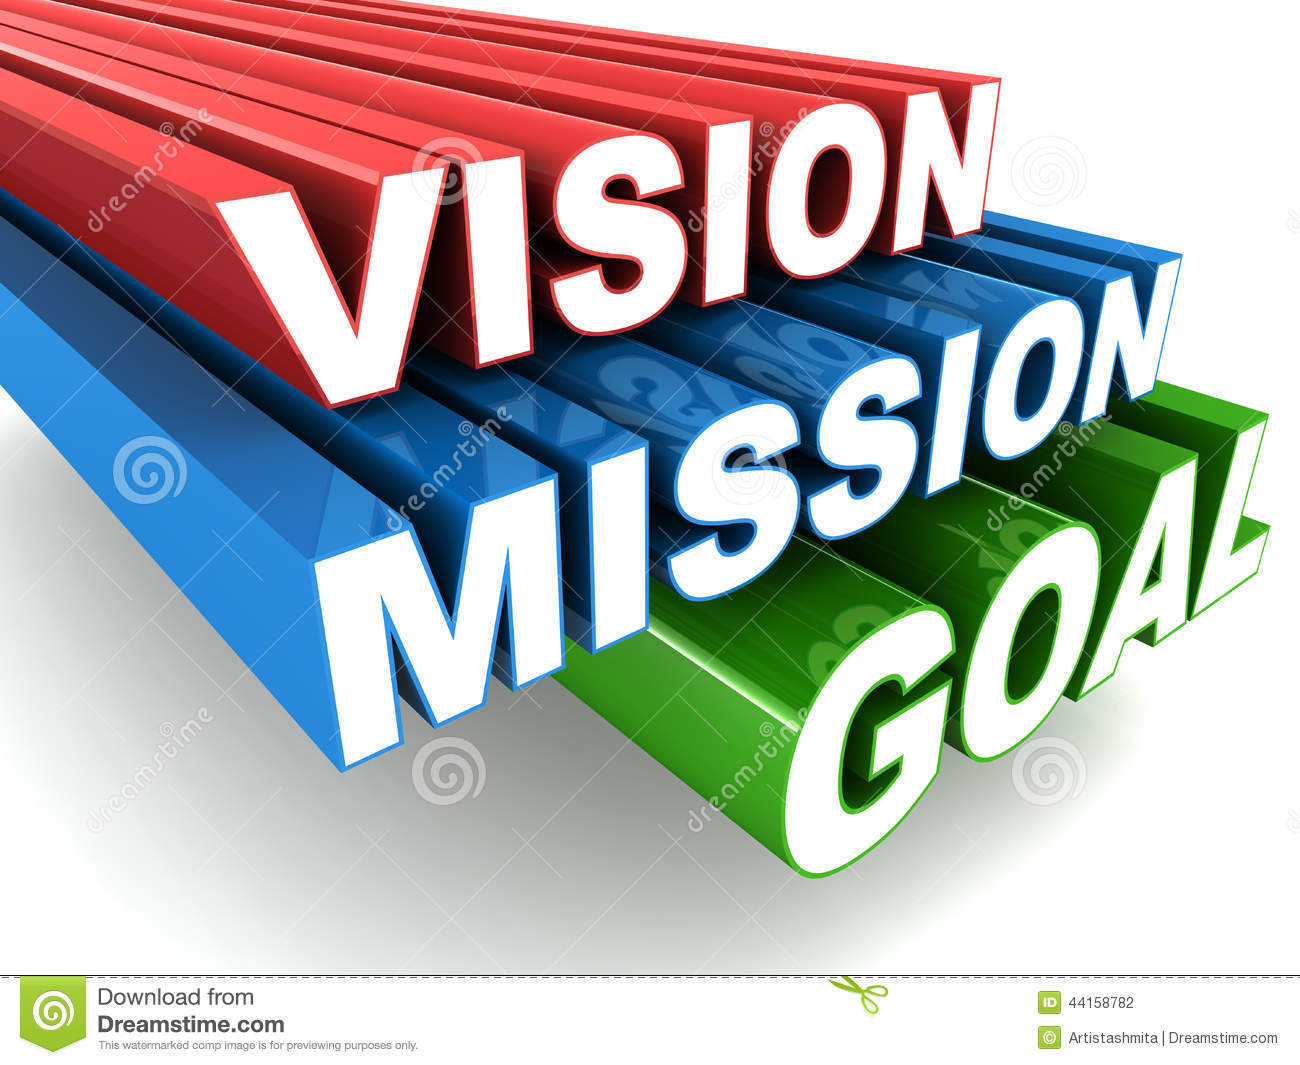 Missions clipart mission vision. Clip art free panda